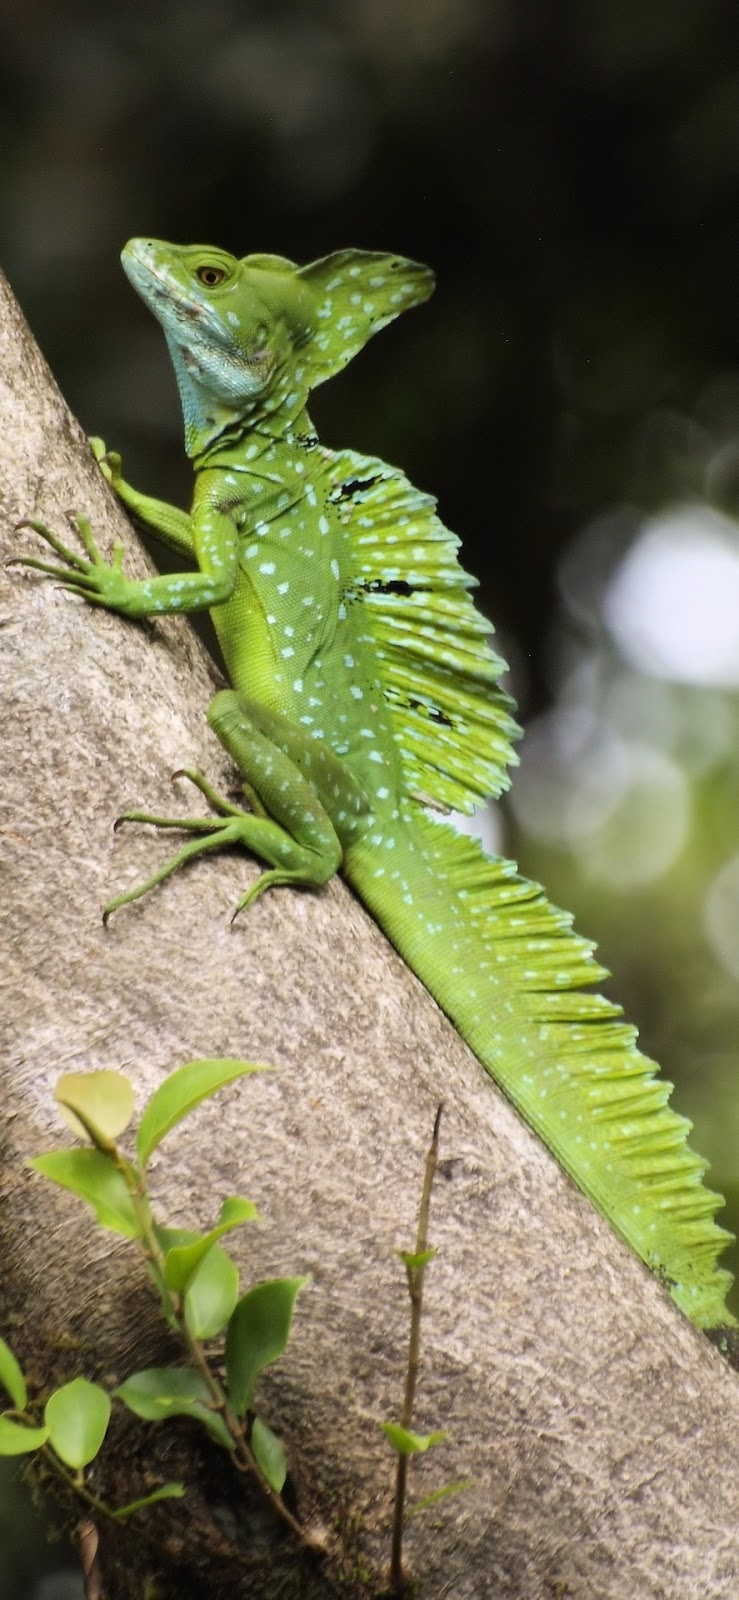 Weird looking green lizard(Basiliscus plumifrons).